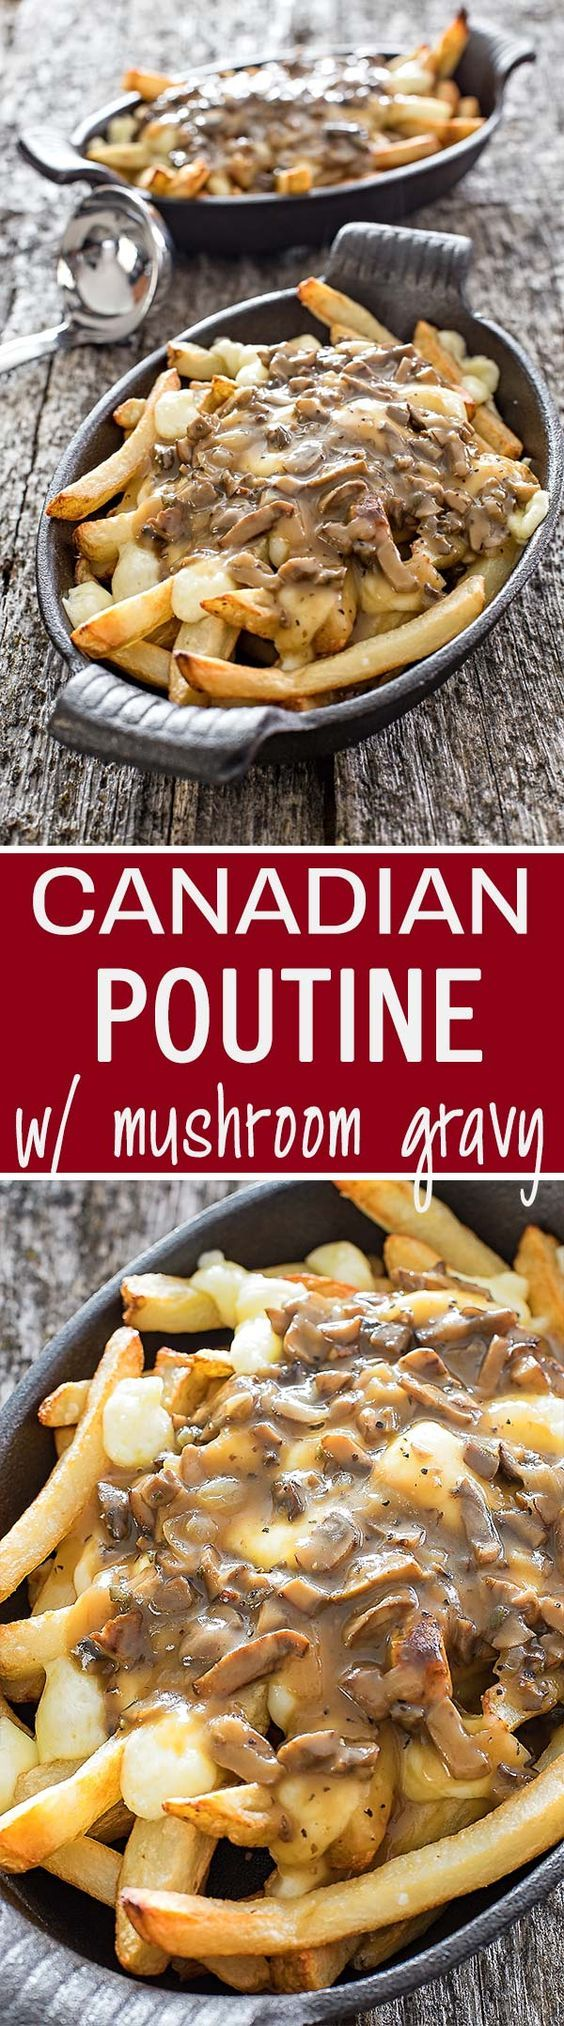 Poutine is the most popular Canadian fast-food dish, traditionally made using crispy french fries topped with cheese curds and delicious turkey or beef gravy.: